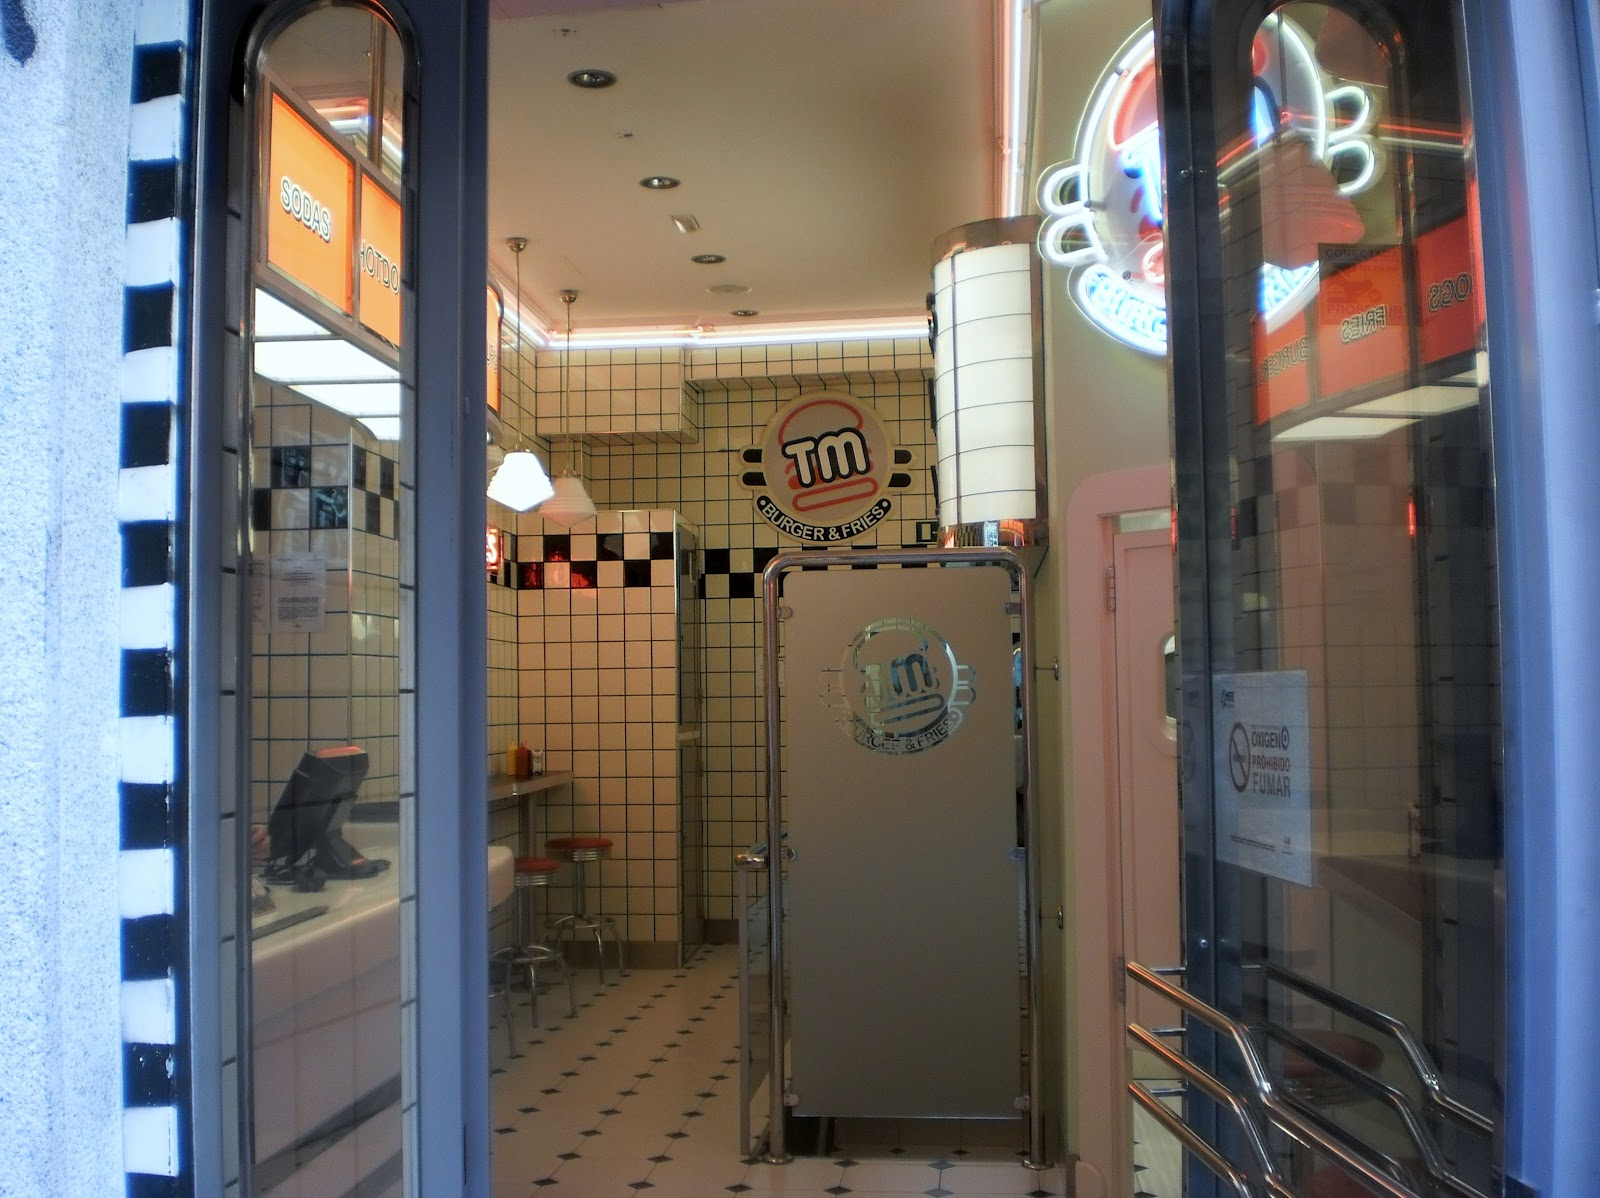 Spain now walking some restaurants and shops in madrid american style - The body shop madrid ...